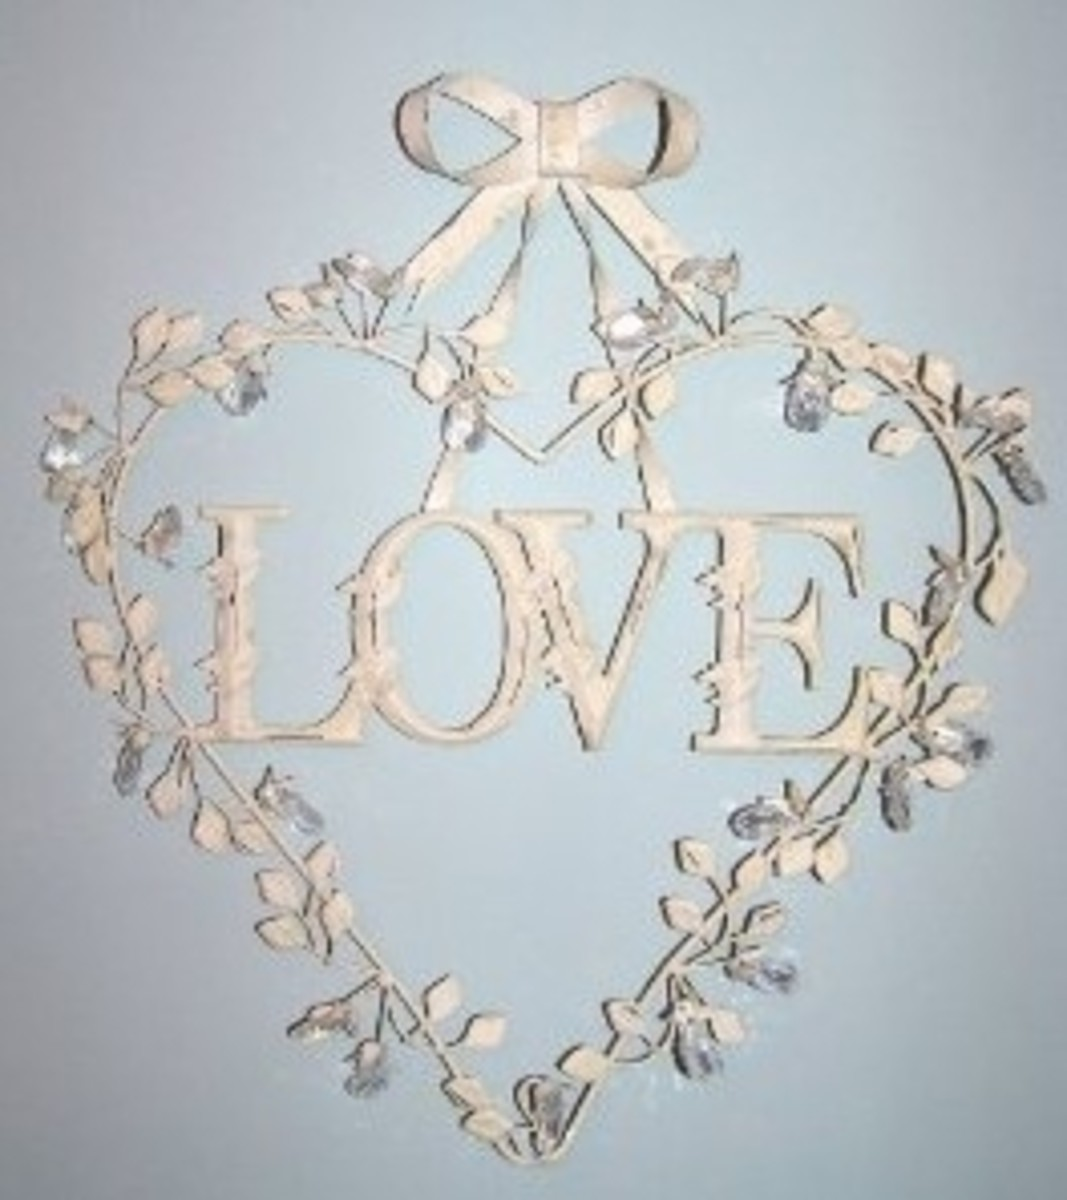 Shabby Chic Love Heart Wreath on Amazon